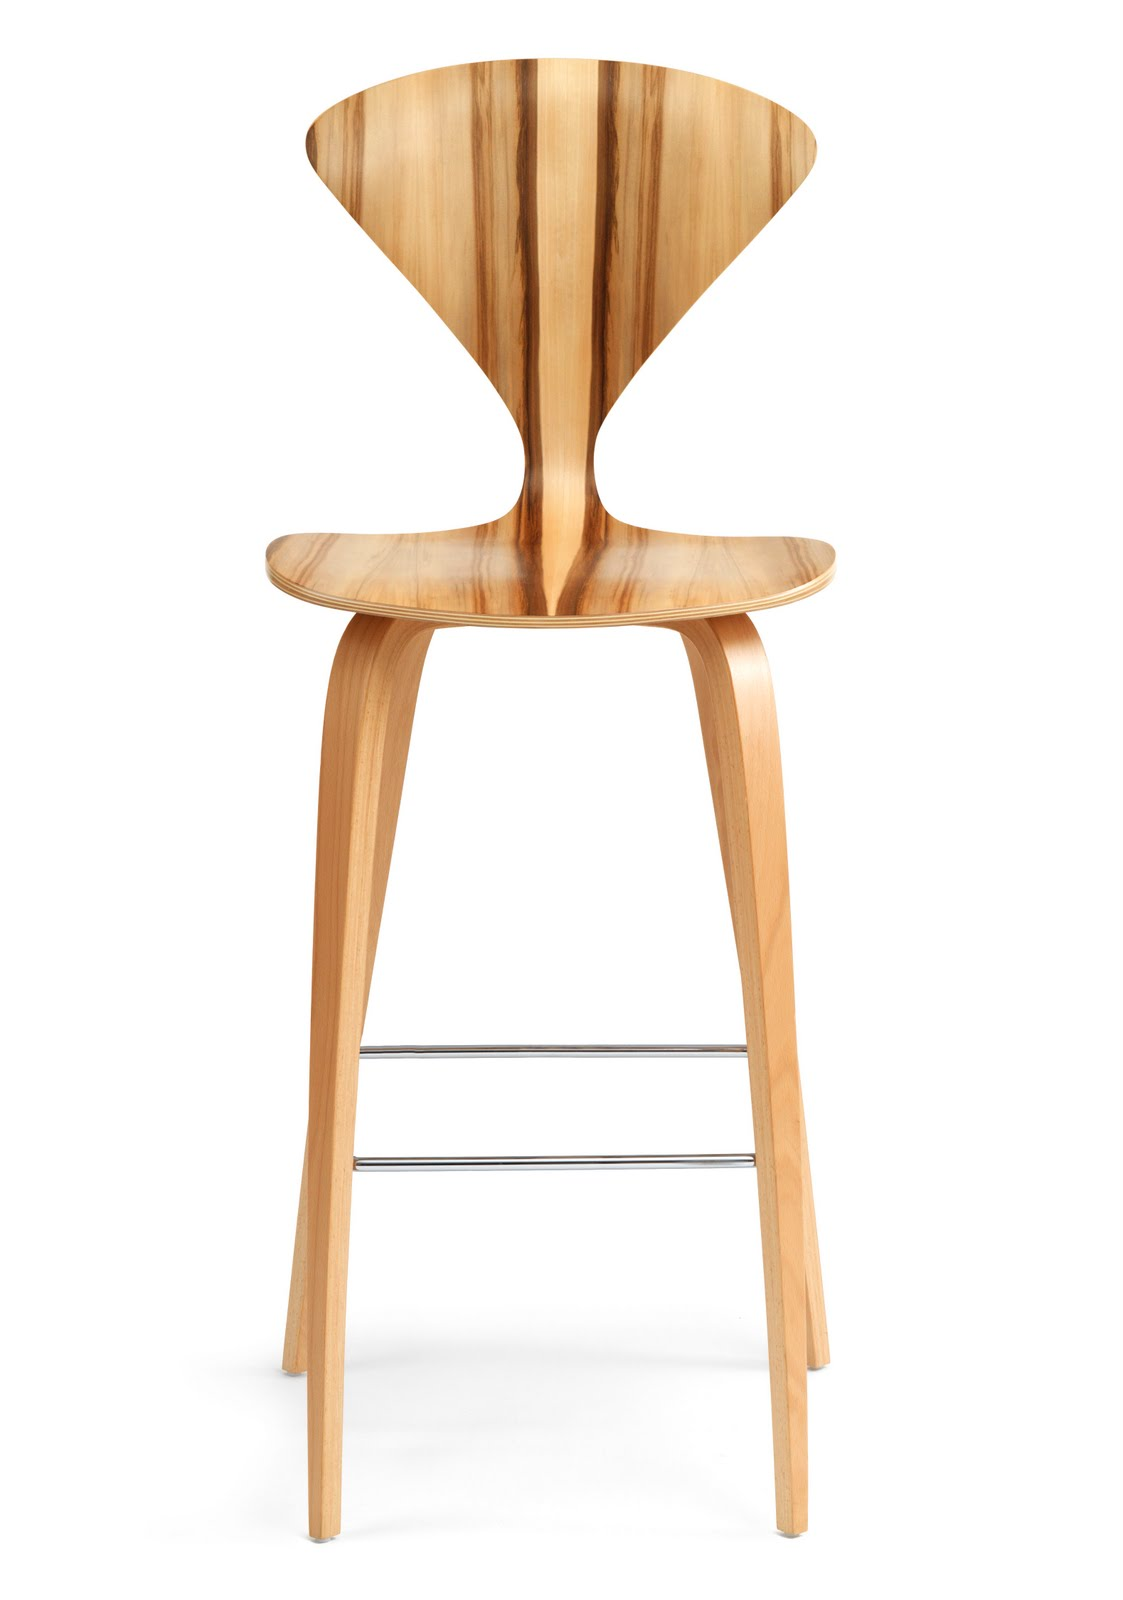 Cherner Red Gum Wood Base Modern Bar Or Counter Stool Height